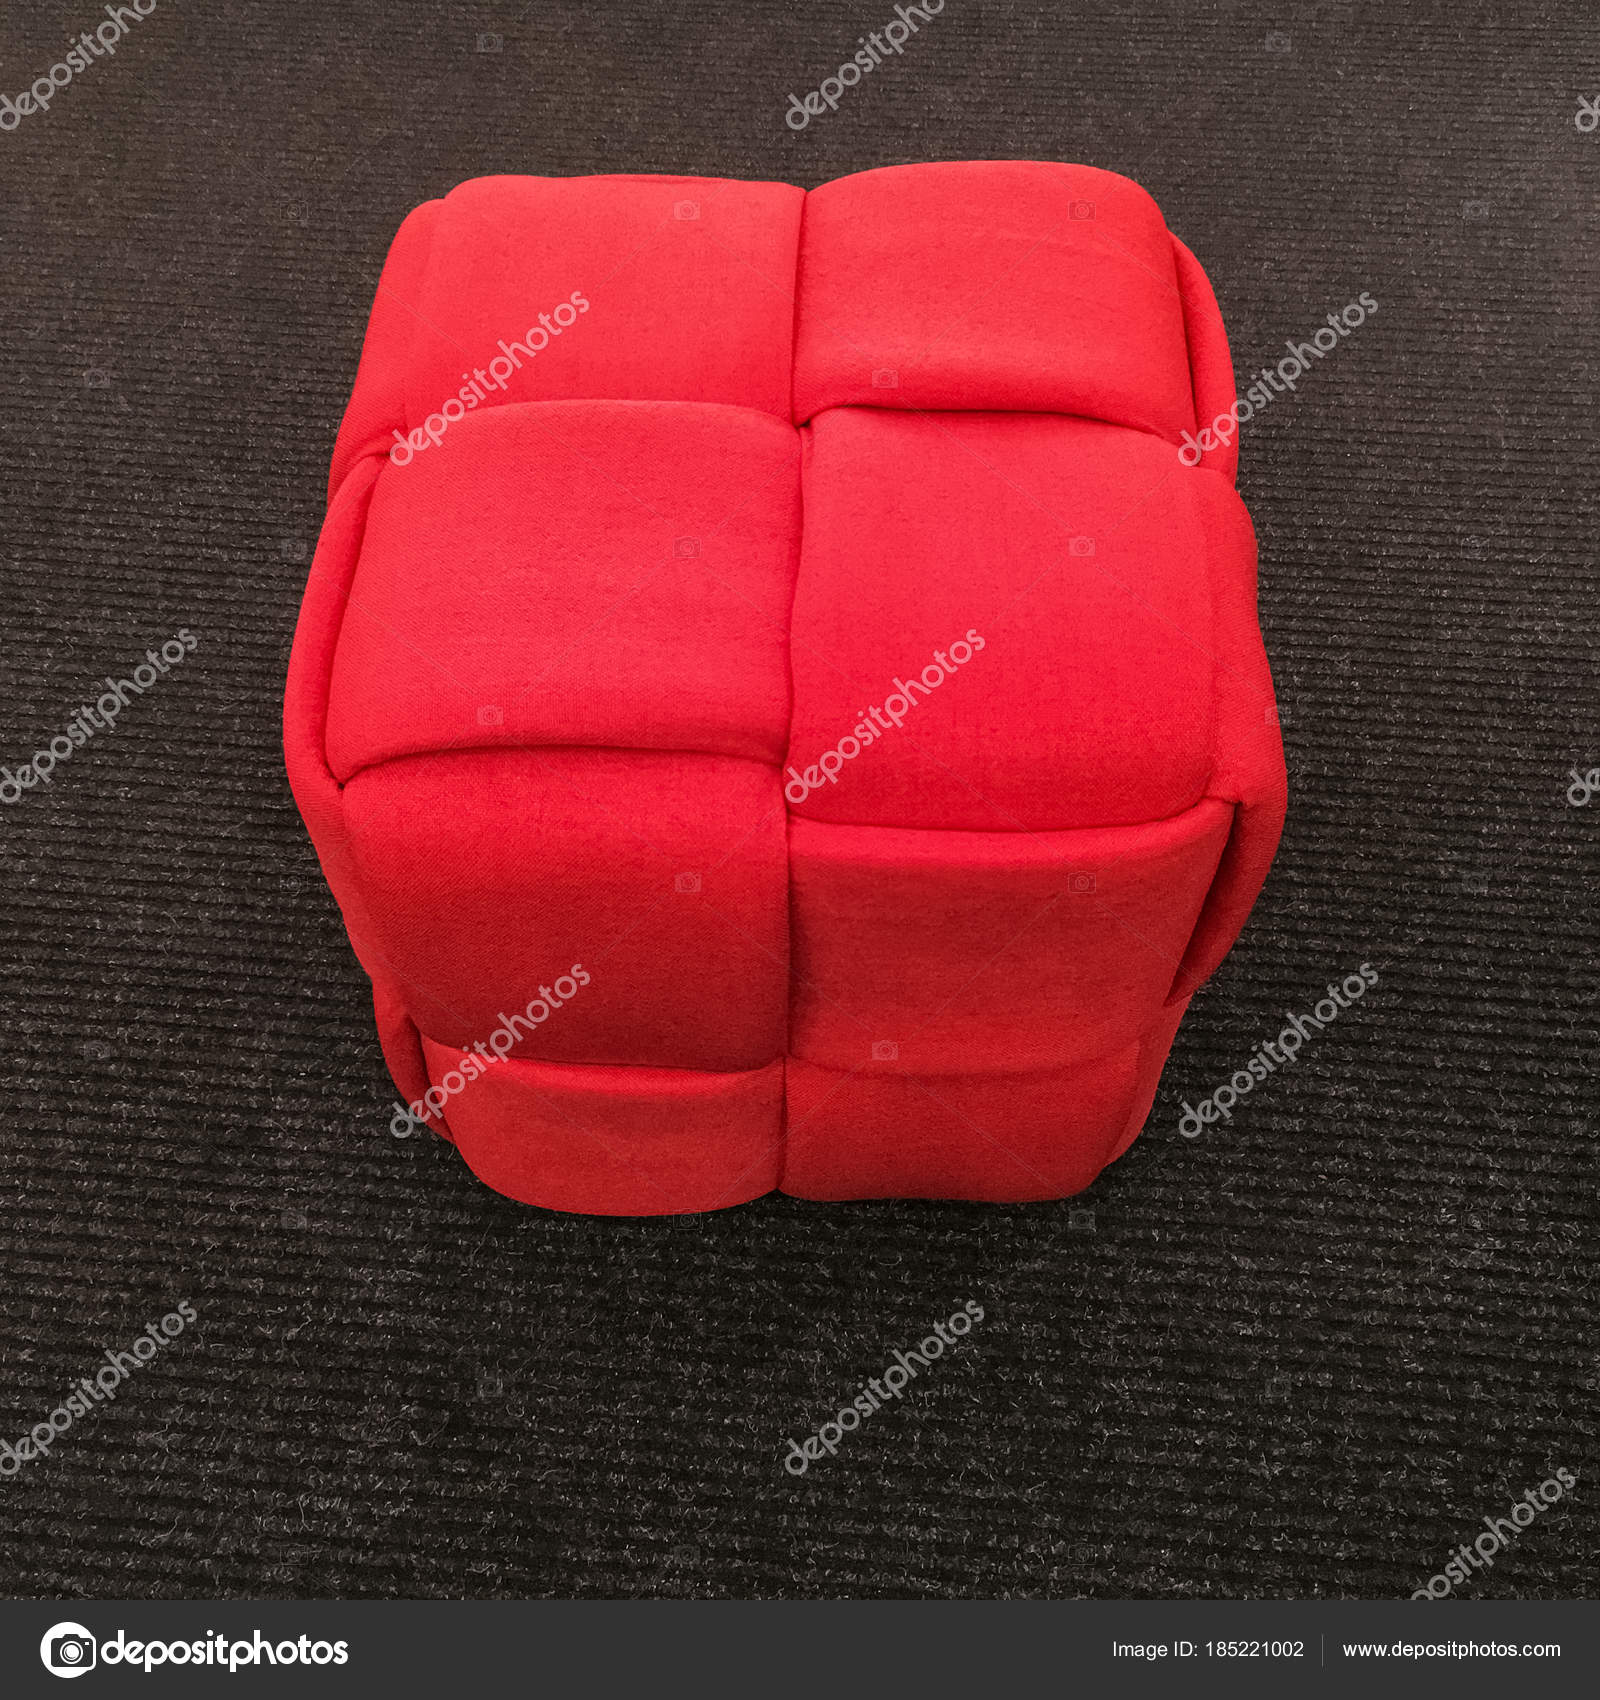 Astounding Modern Red Cube Chair On Gray Carpet Floor Stock Photo Machost Co Dining Chair Design Ideas Machostcouk